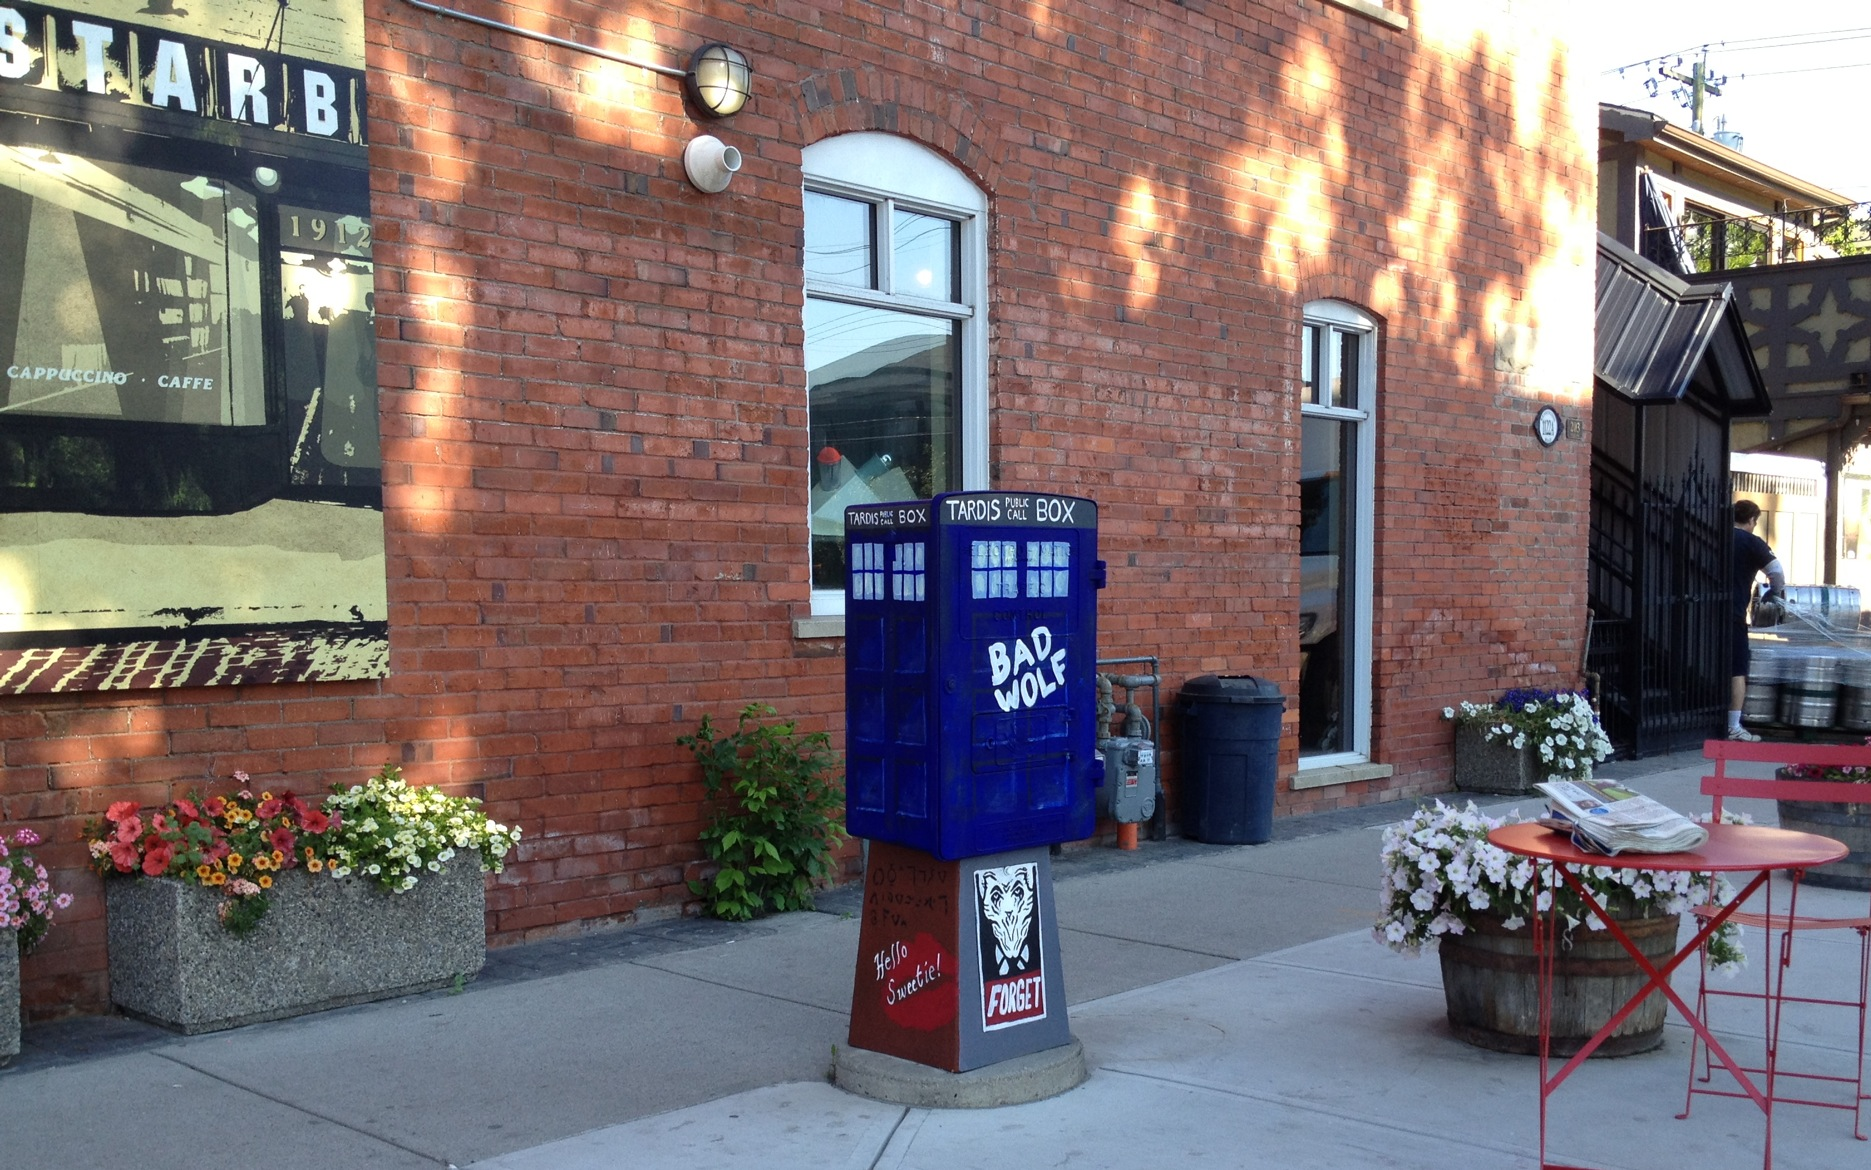 Dr. Who-inspired art comes to Calgary!